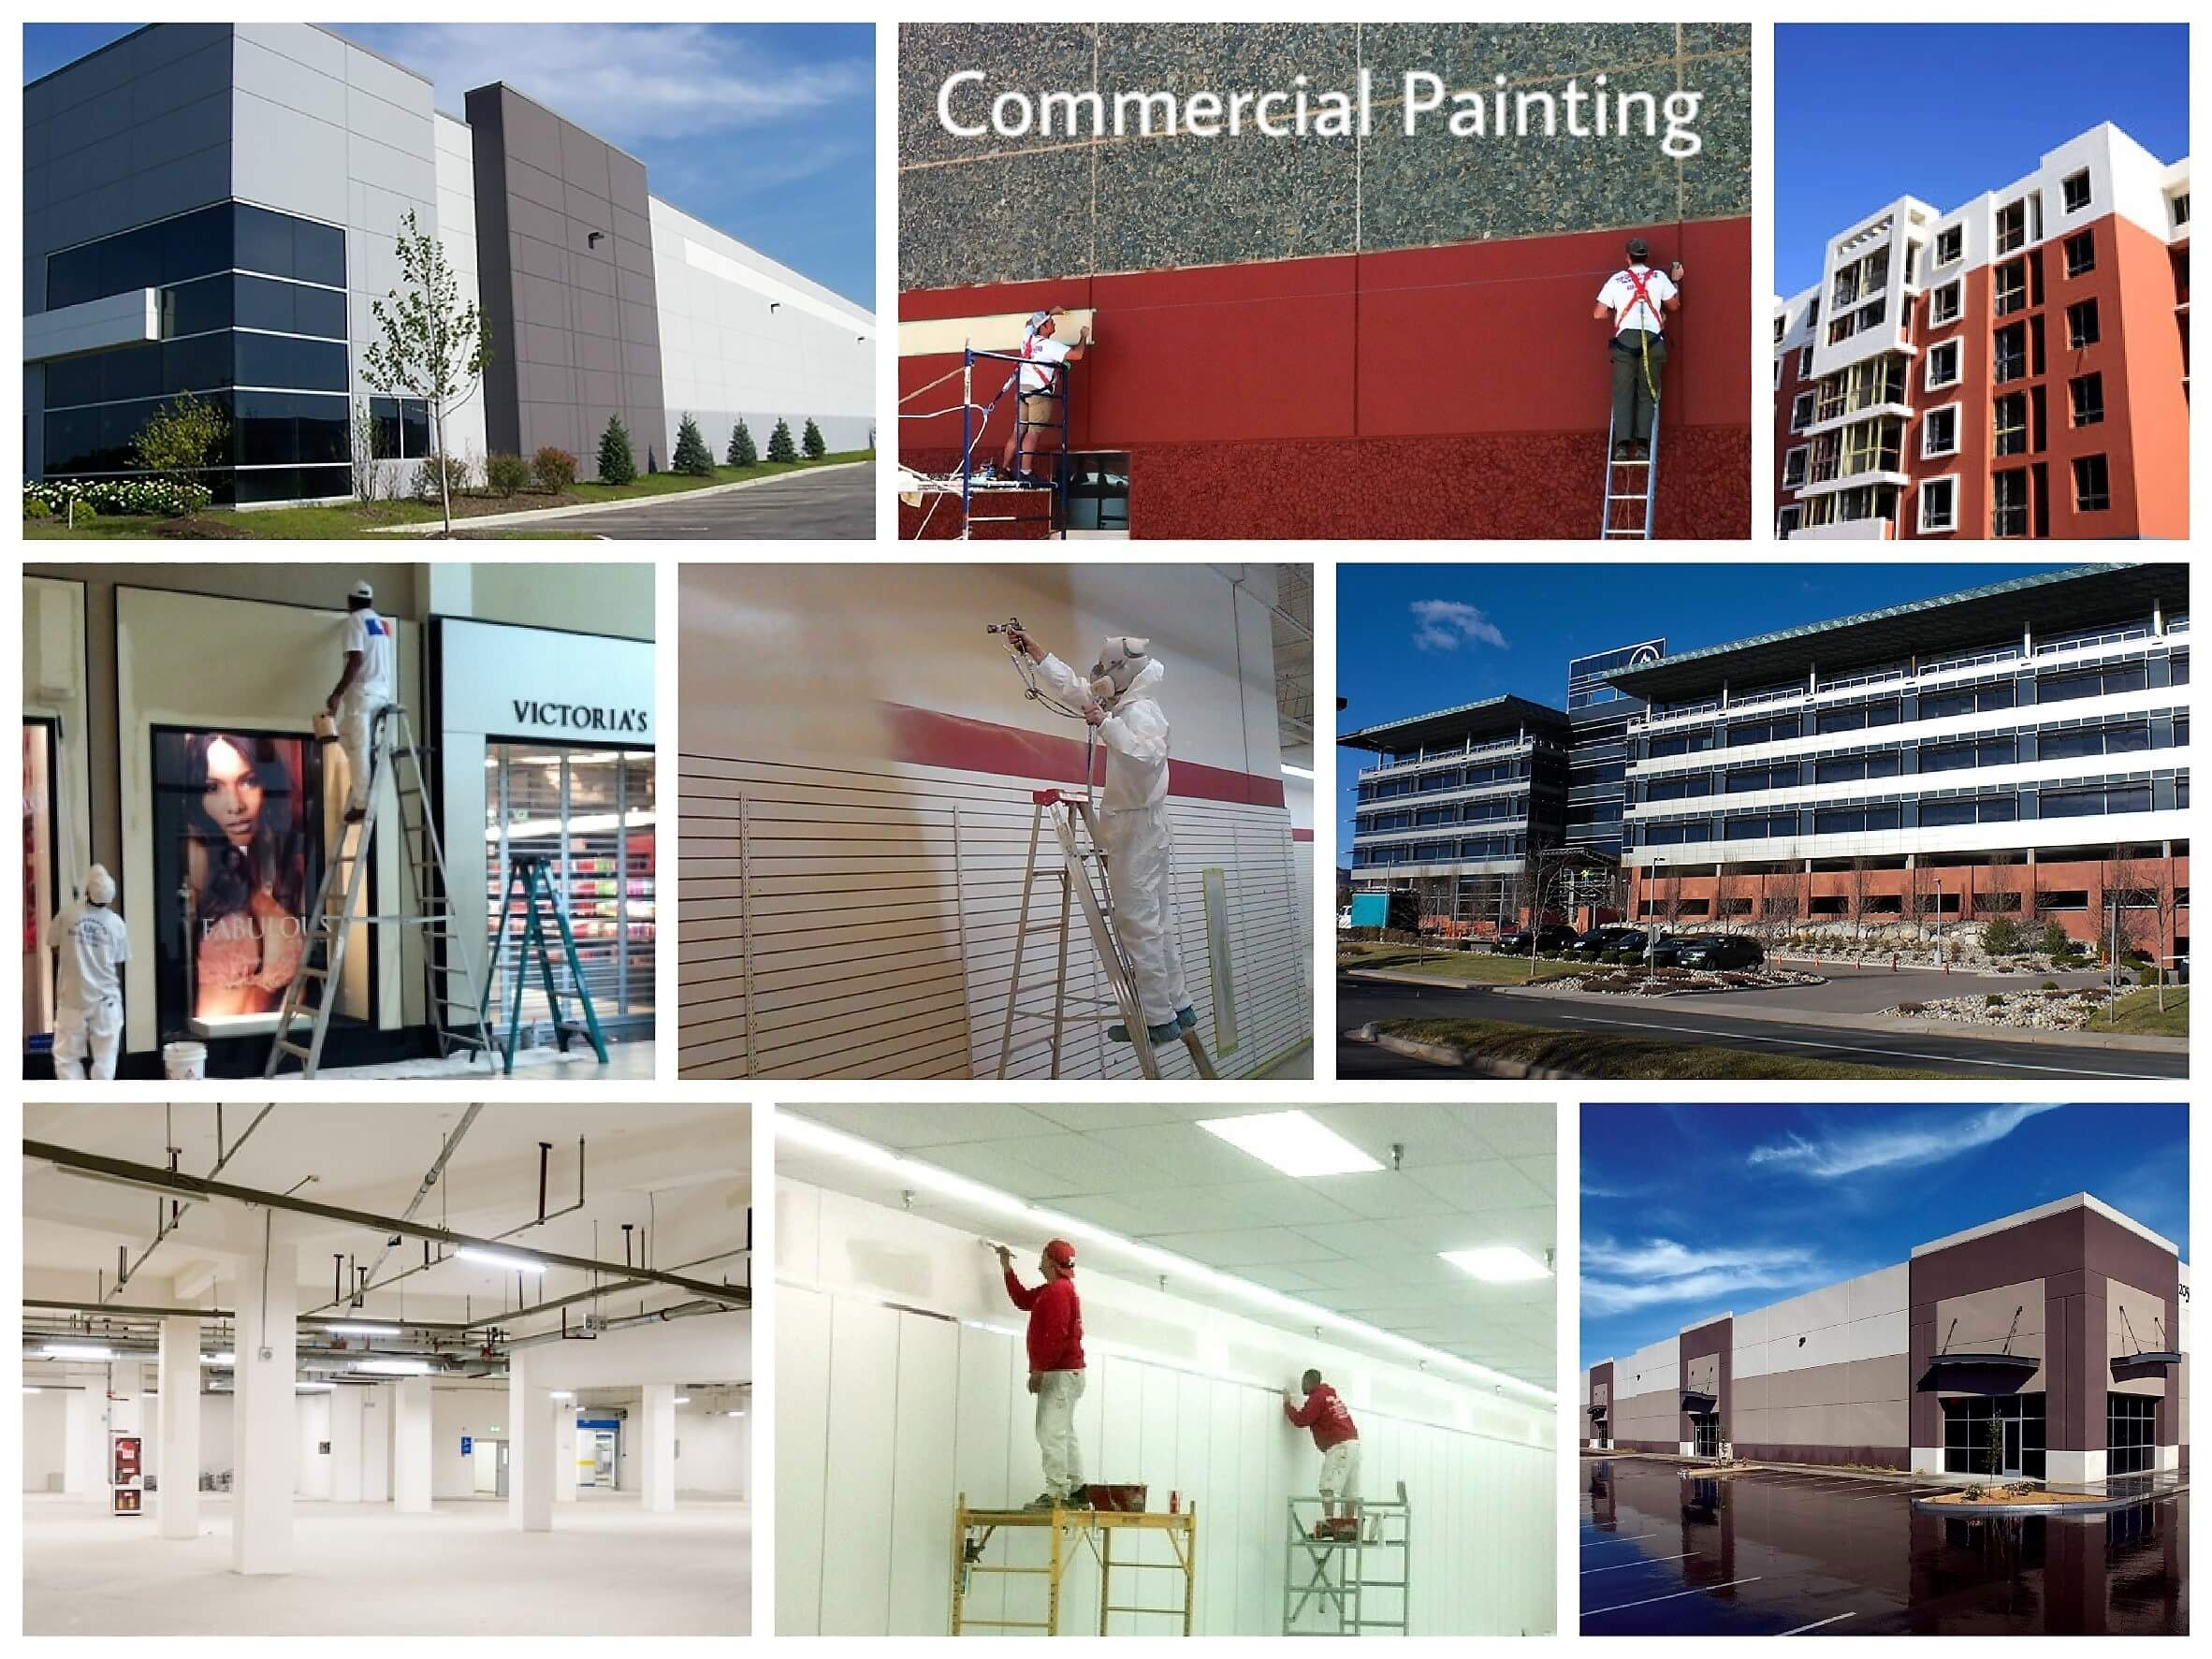 Commercial-Painting-Contrator-Malaysia-422k